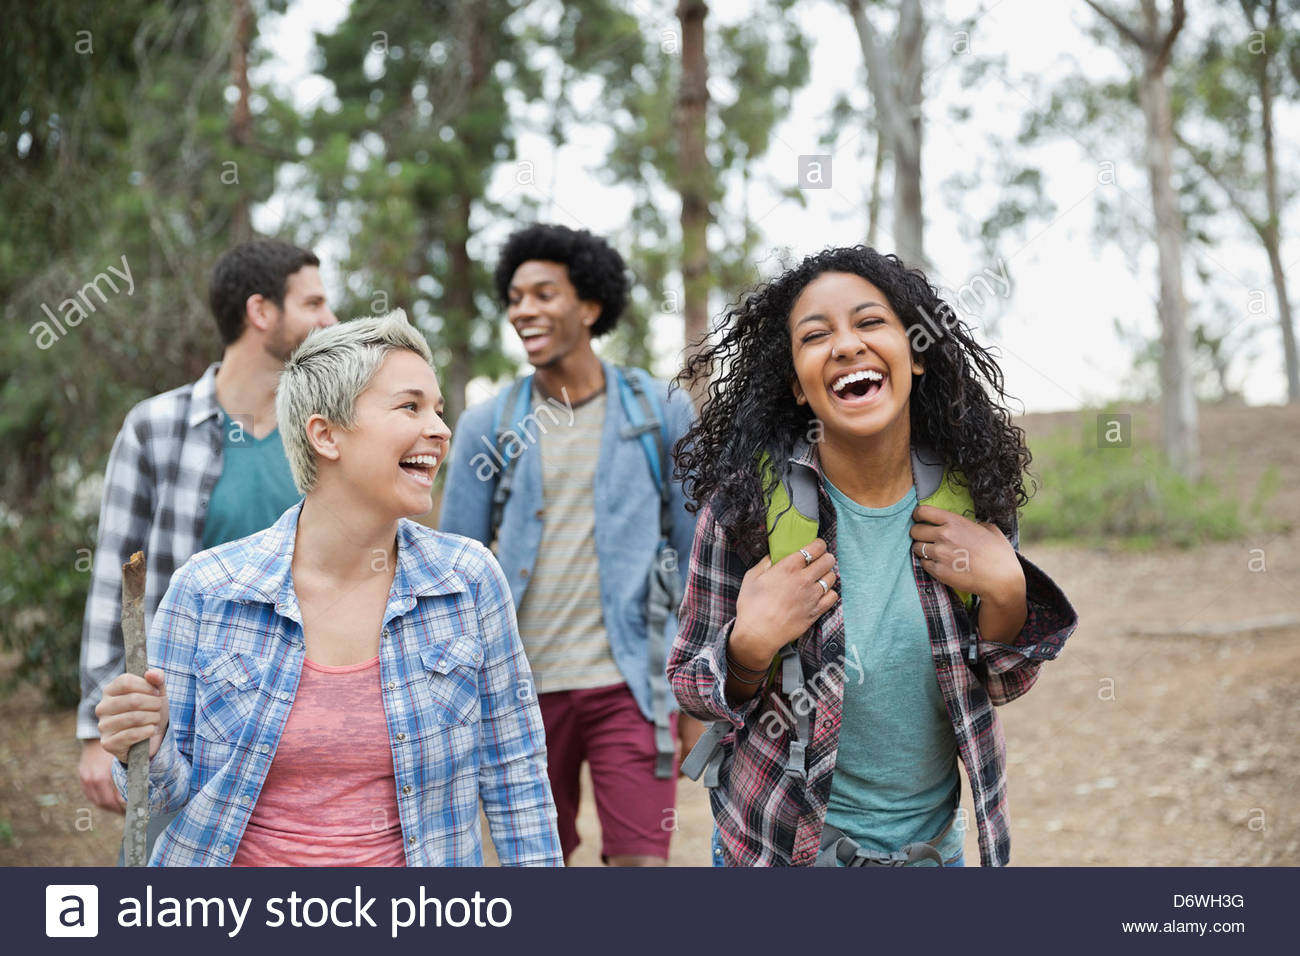 Cheerful multi-ethnic friends hiking together in forest Photo Stock